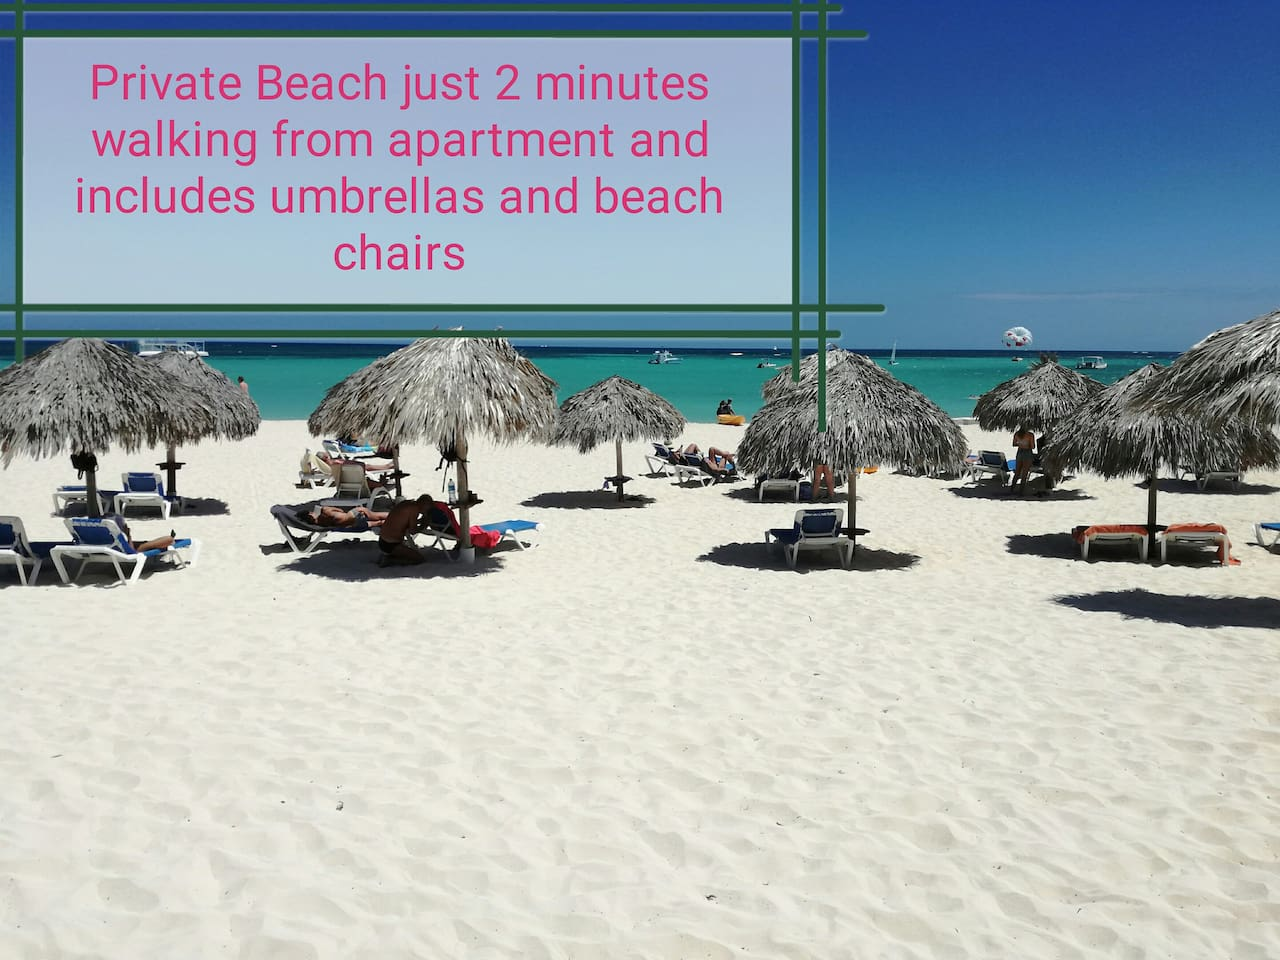 Amazing private beach includes umbrelas and beach chairs (just 2 minutes walking distance from the apartment